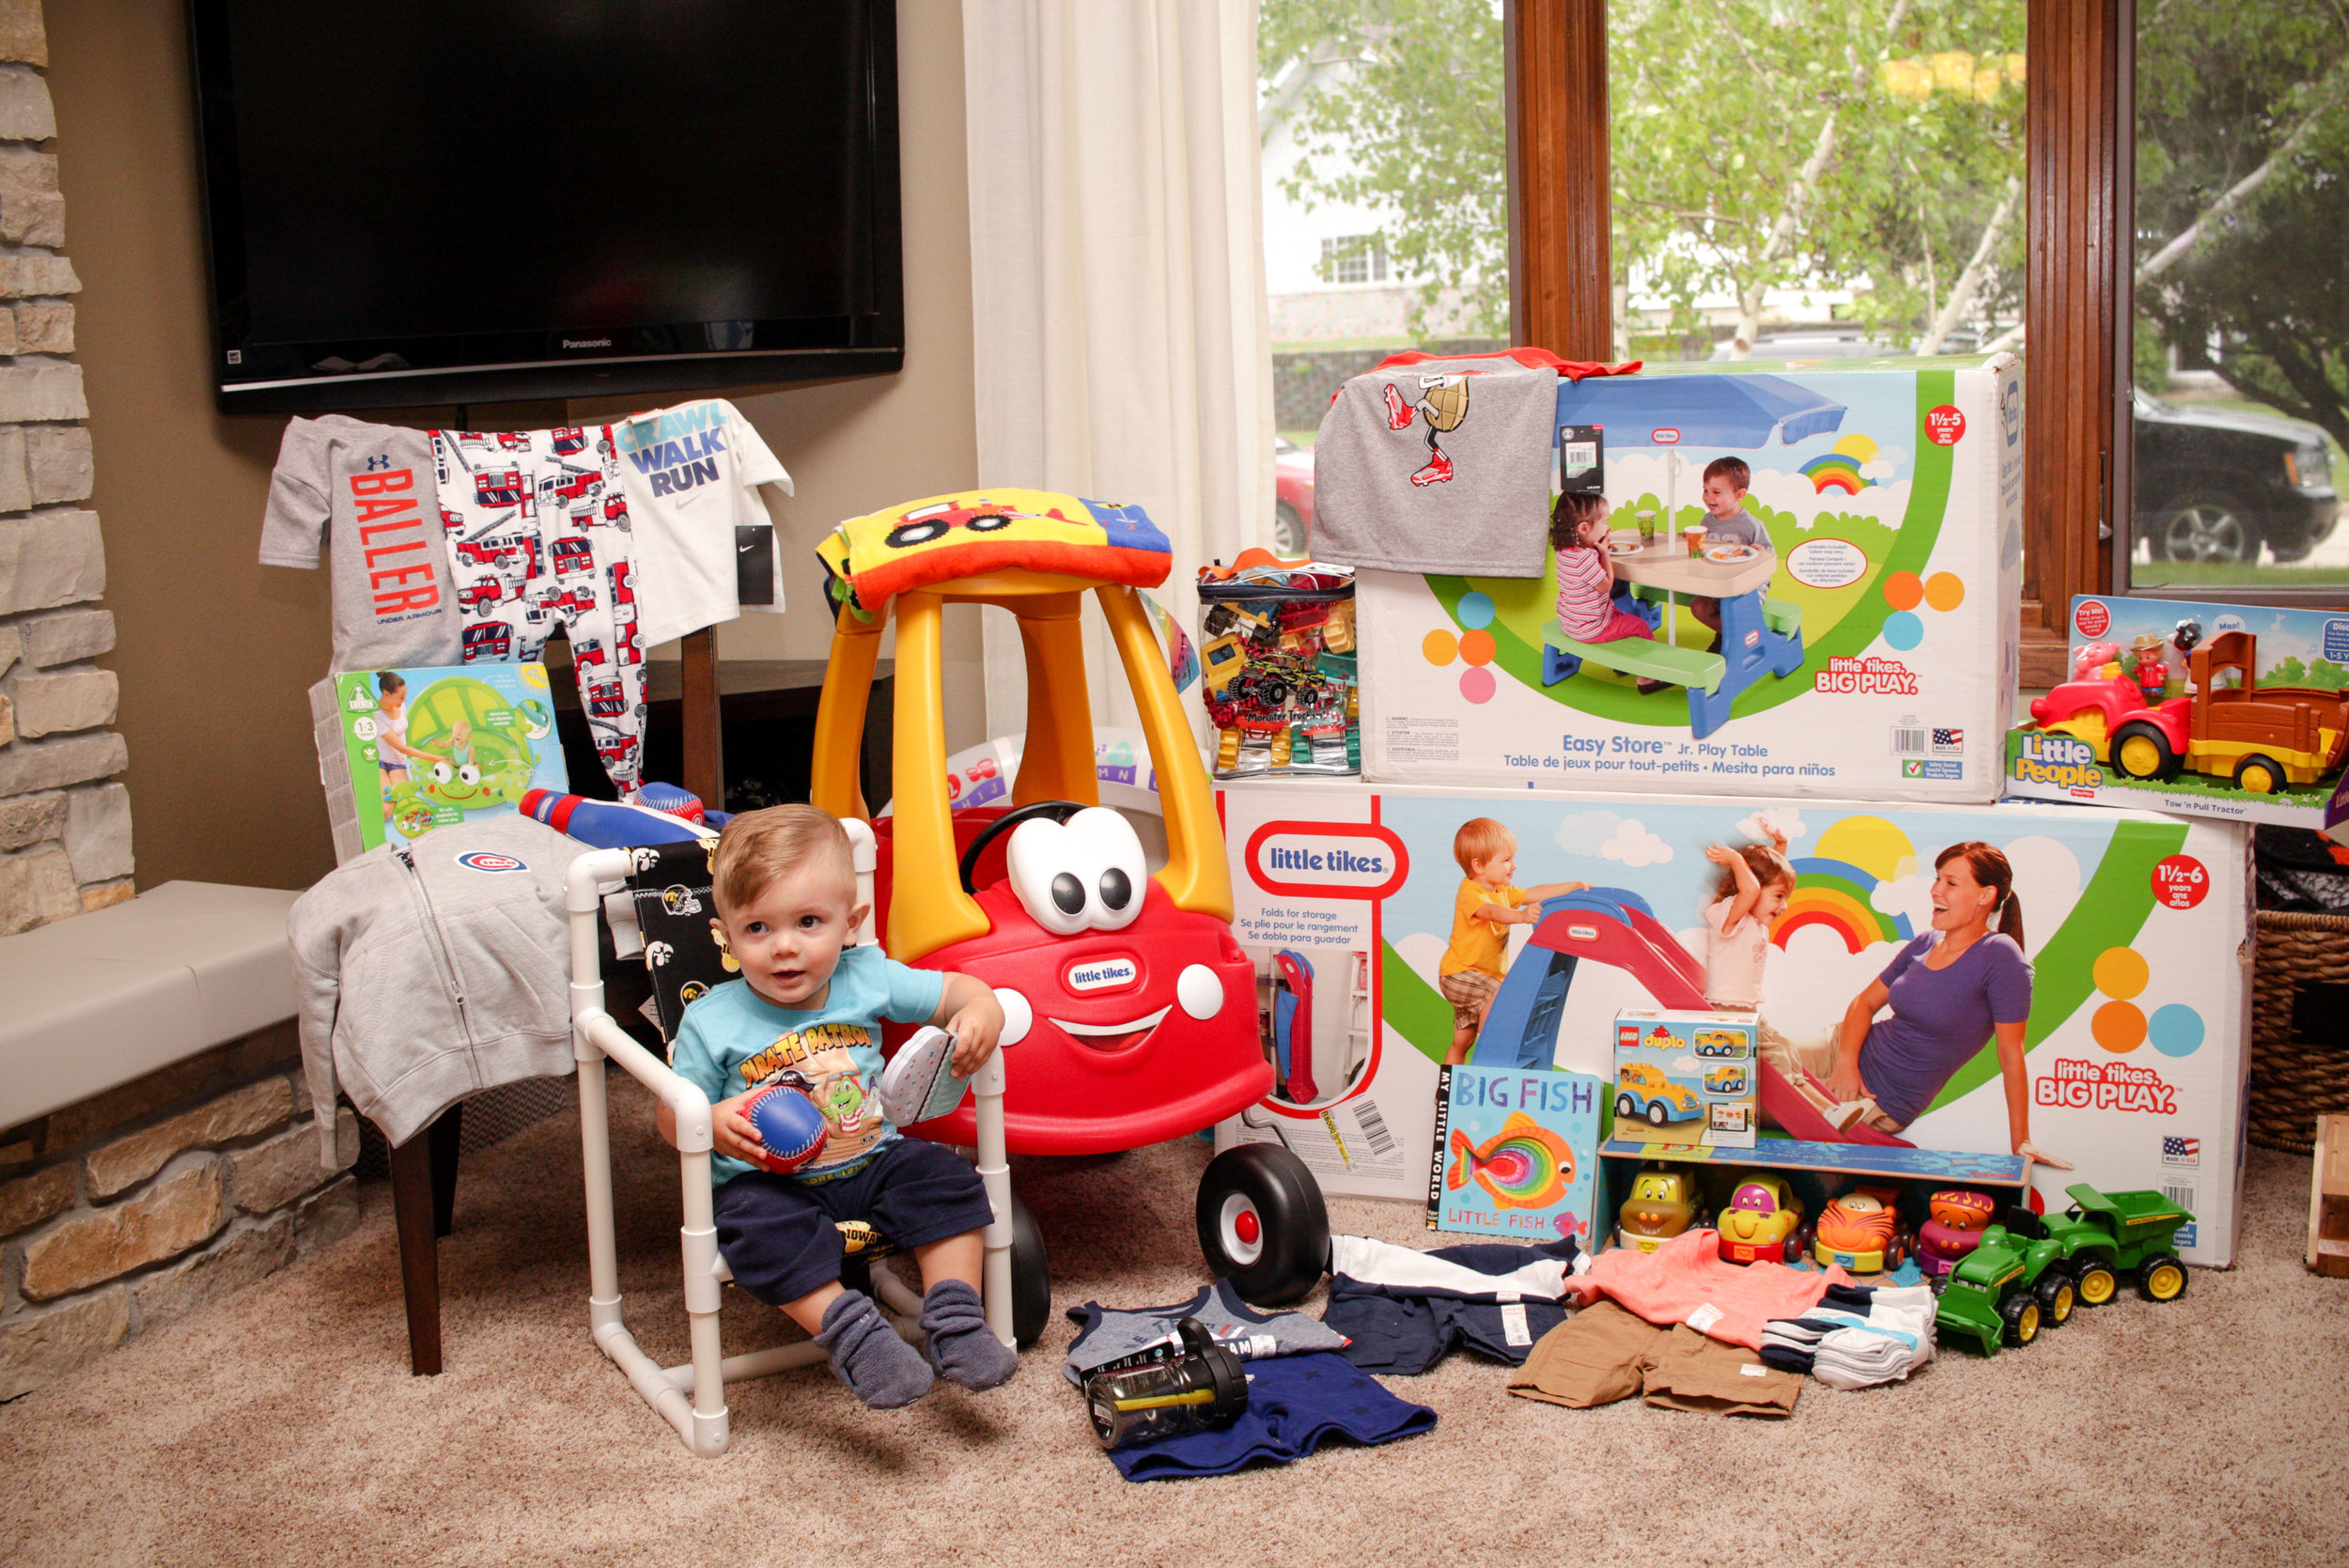 I think it's safe to say he made out pretty well in gifts for his first party! He especially enjoyed sitting in his new chair and scooting around in his red and yellow car.